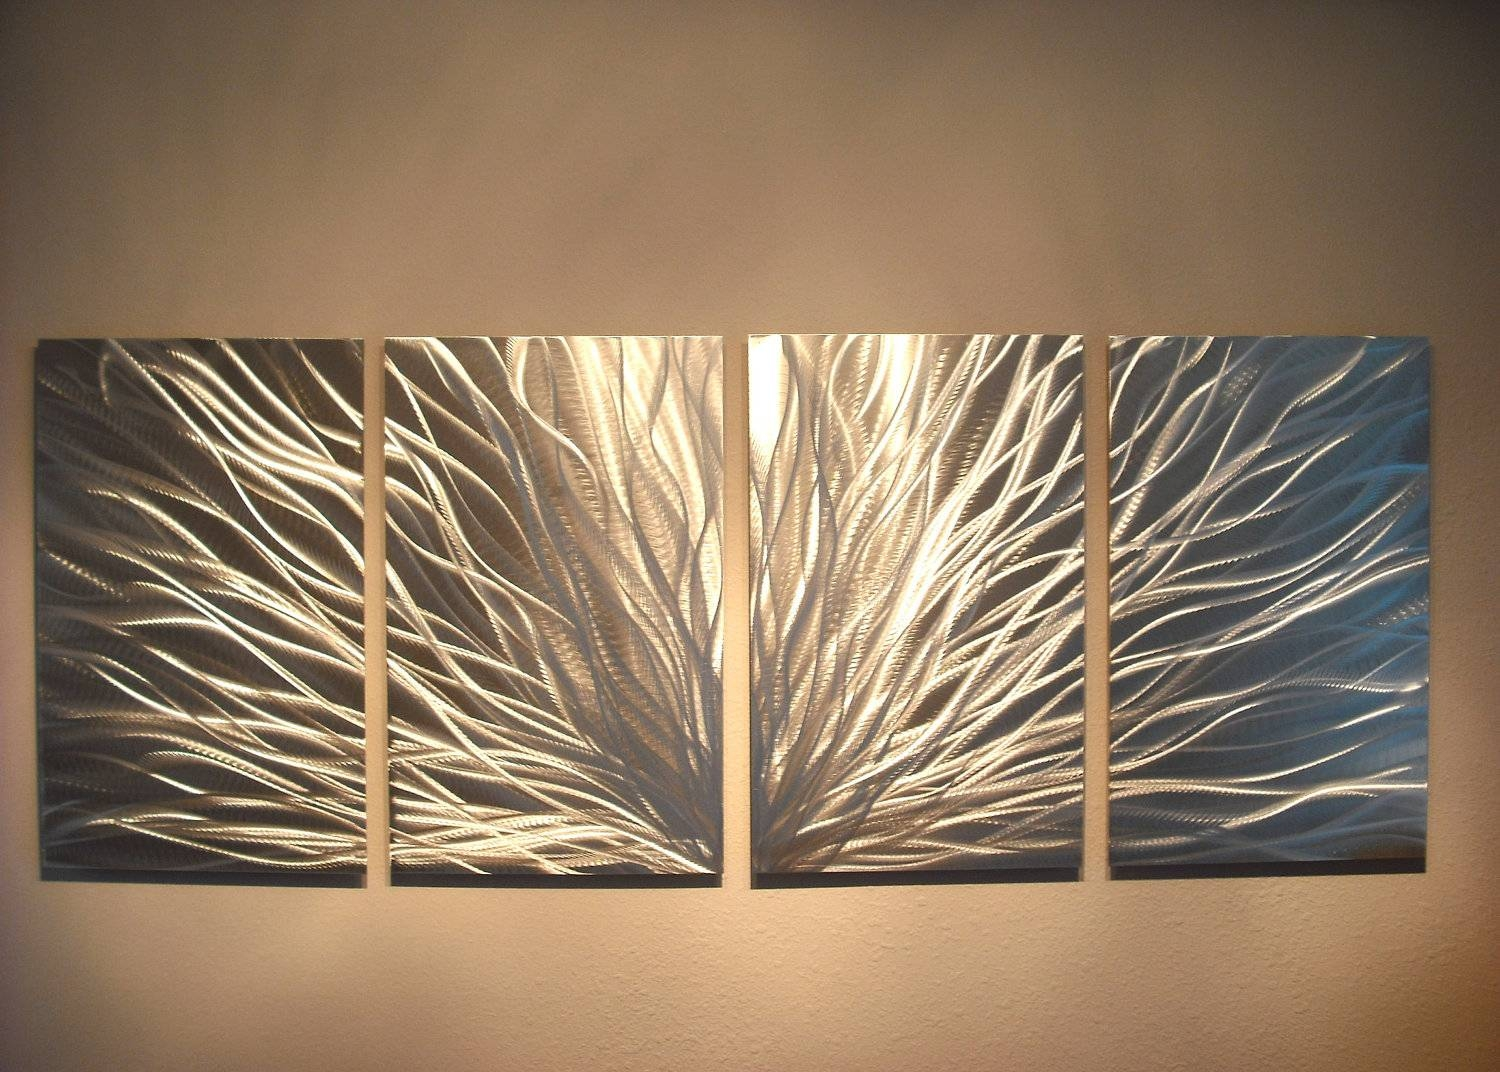 Radiance – Abstract Metal Wall Art Contemporary Modern Decor In Most Current Contemporary Large Metal Wall Art (View 4 of 20)